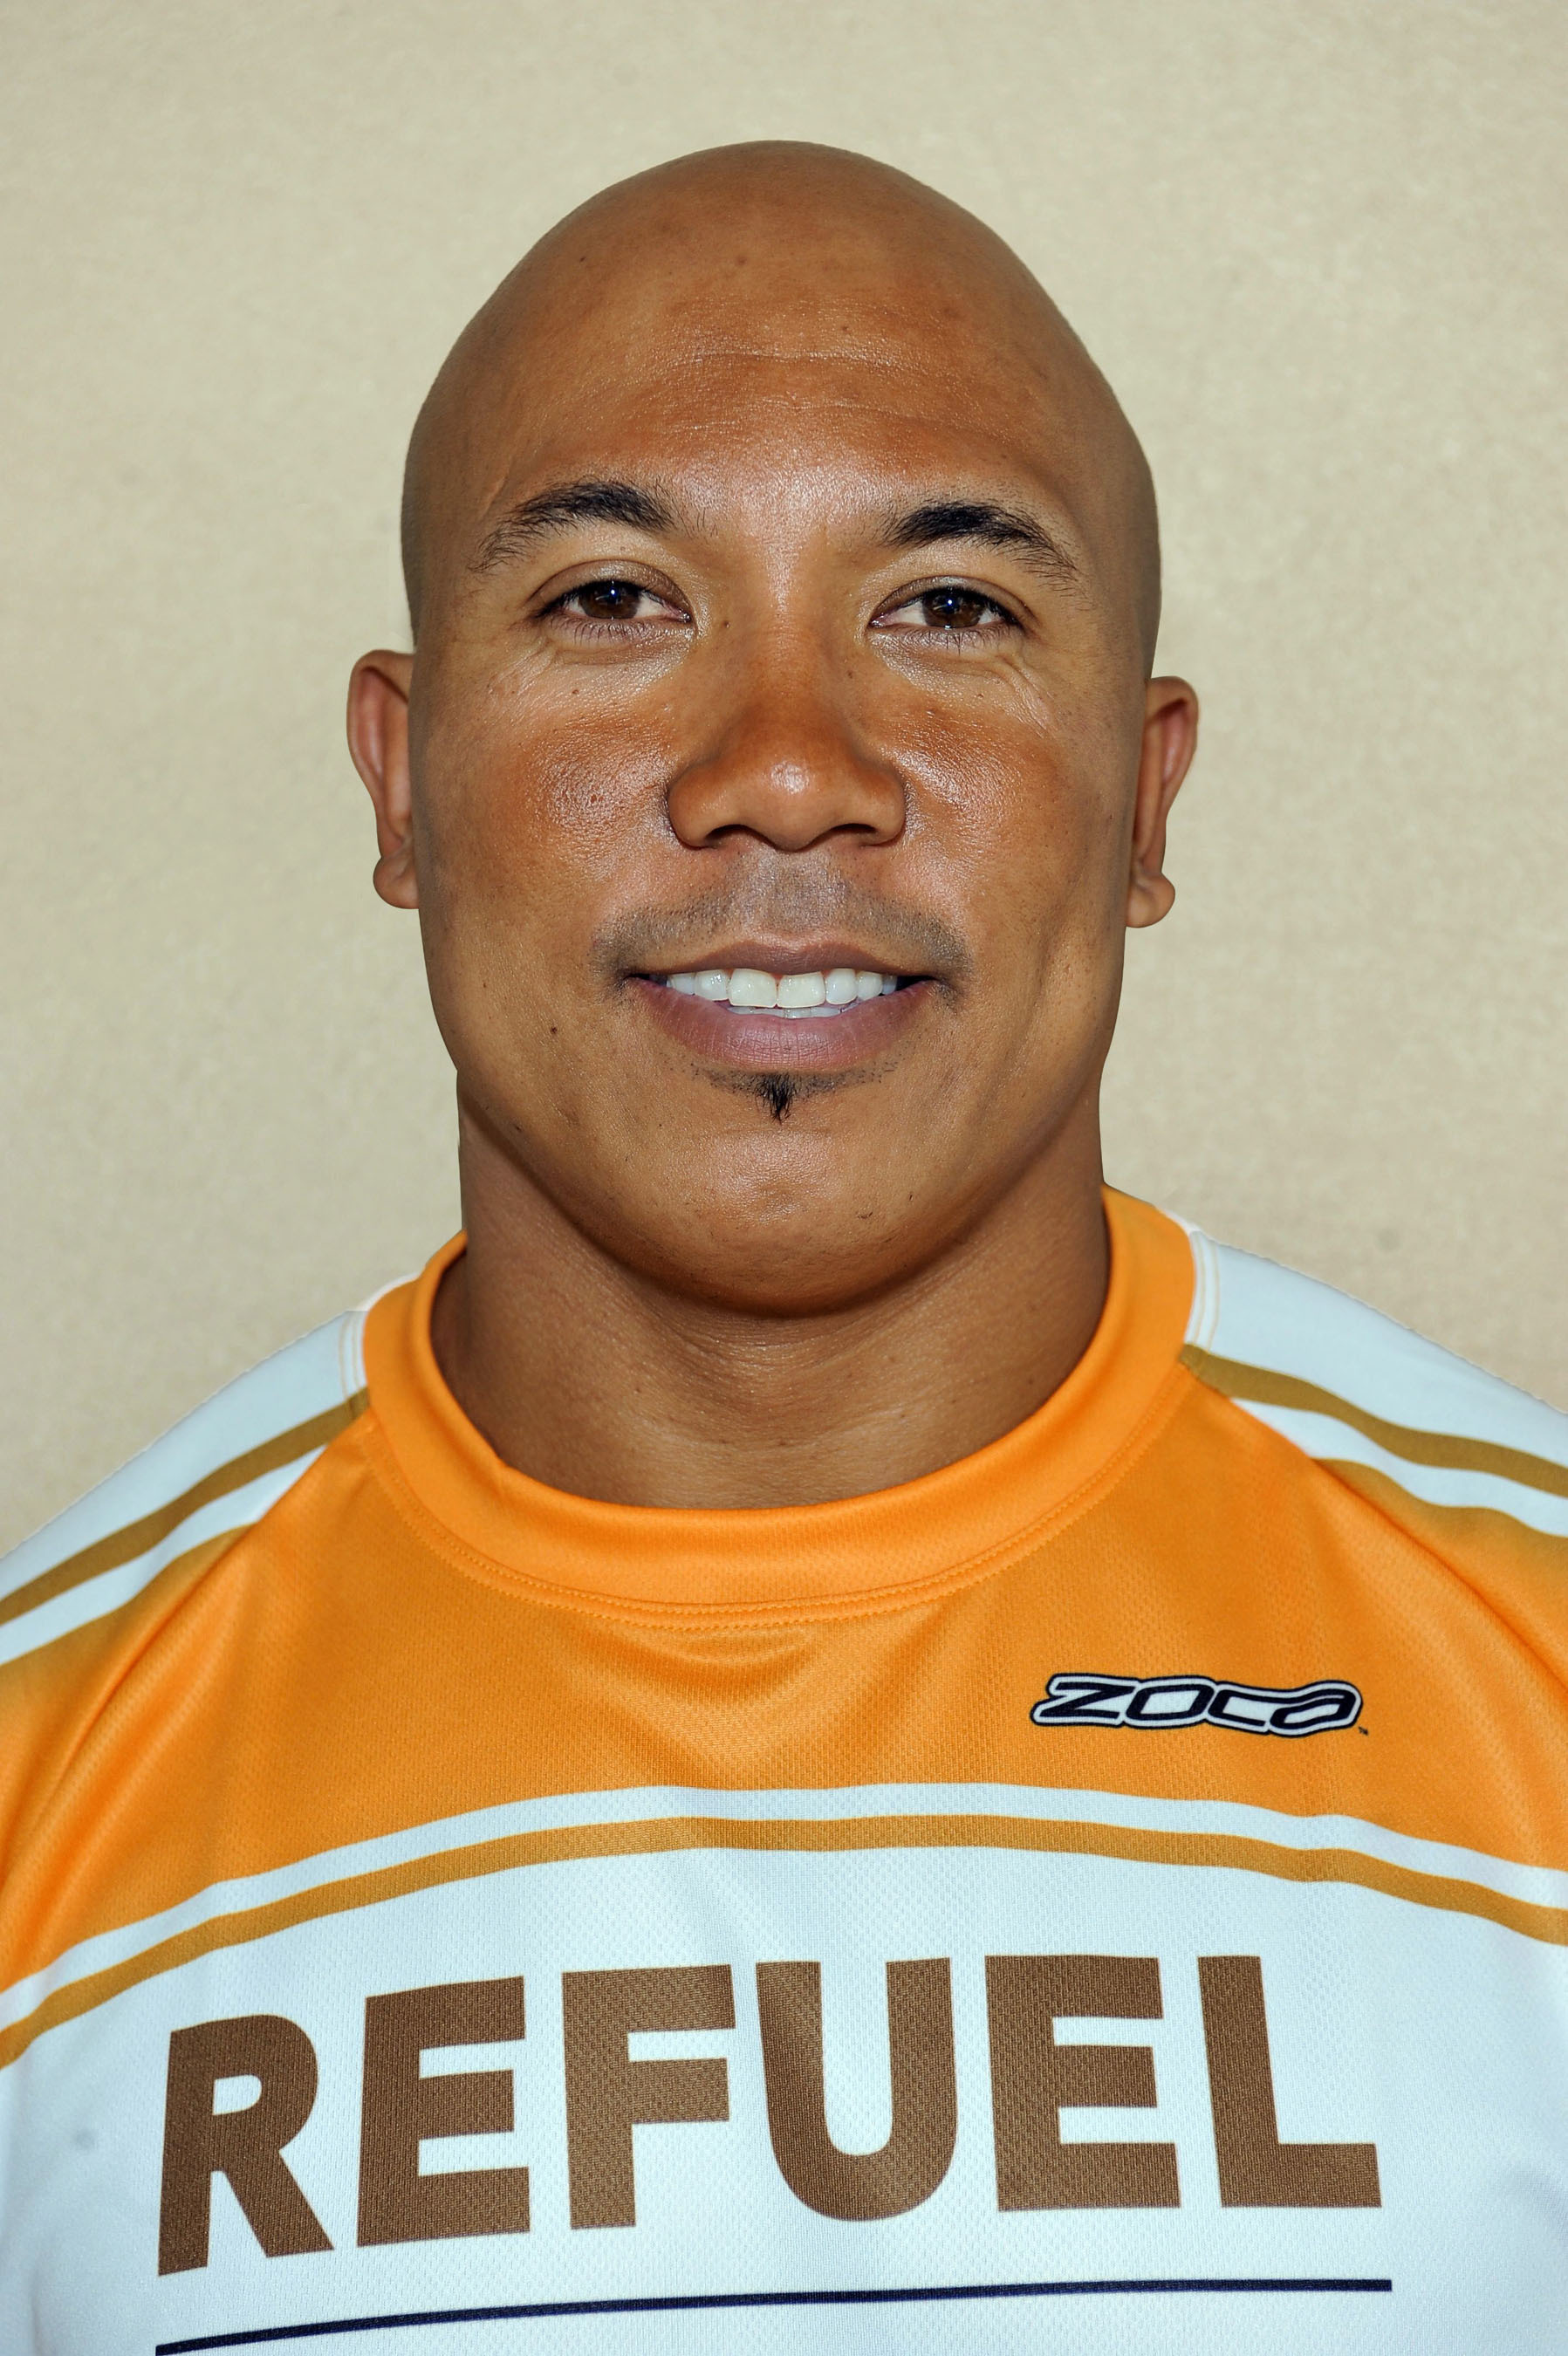 Former football star Hines Ward has teamed up with REFUEL   'got chocolate milk?' to take on the 2013 IRONMAN(R) World Championship triathlon in Hawai'i thanks to a new program and Web series called 'BECOME ONE(TM)' The program will provide Ward - plus two contest winners chosen to train and race with him - with the tools and nutritional know-how to conquer the 140.6-mile triathlon, including refueling with lowfat chocolate milk. Athletes can apply at www.gotchocolatemilk.com through Nov. 30.  (PRNewsFoto/MilkPEP)